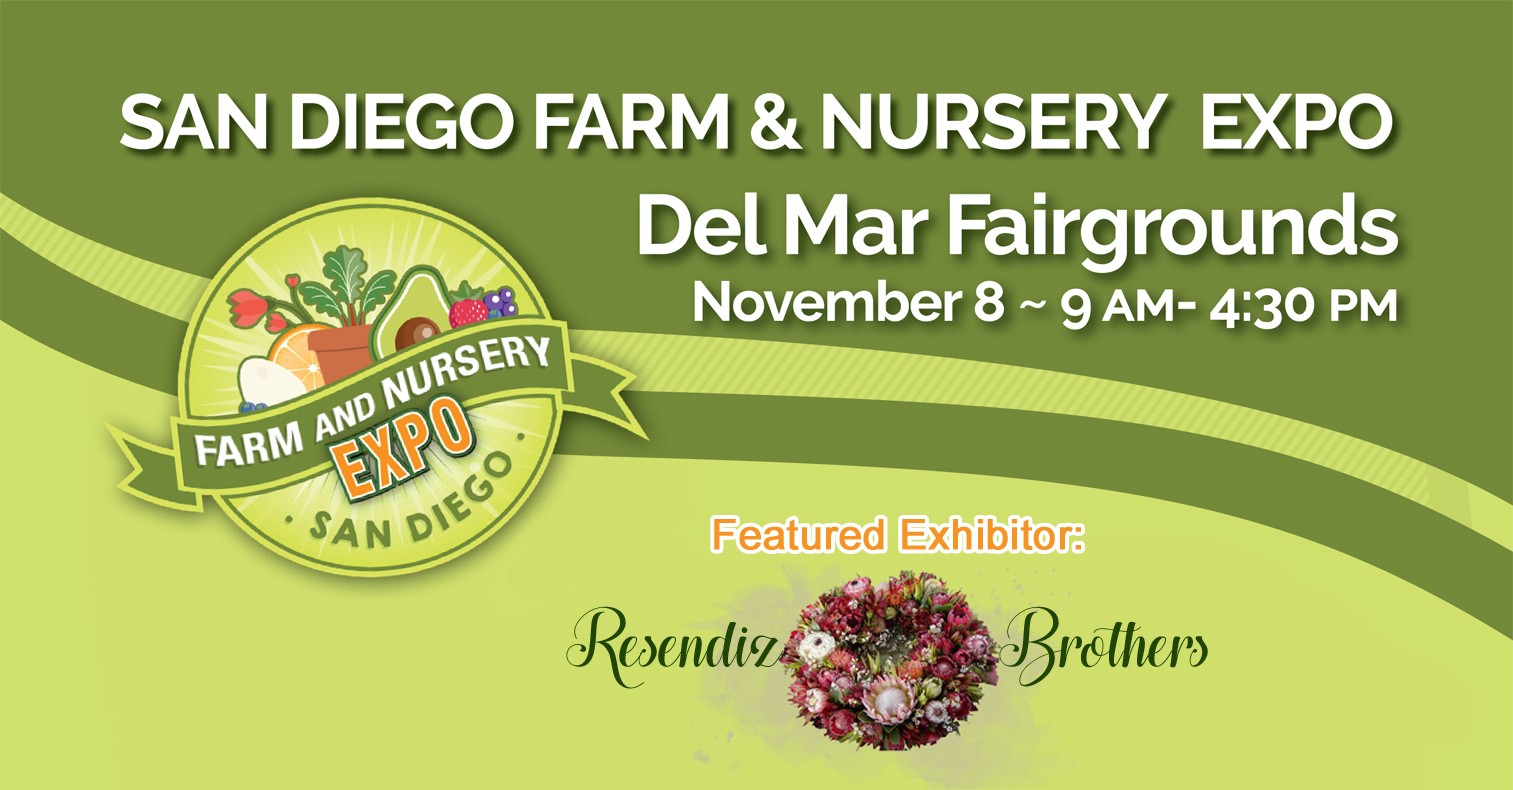 San Diego Farm & Nursery Expo